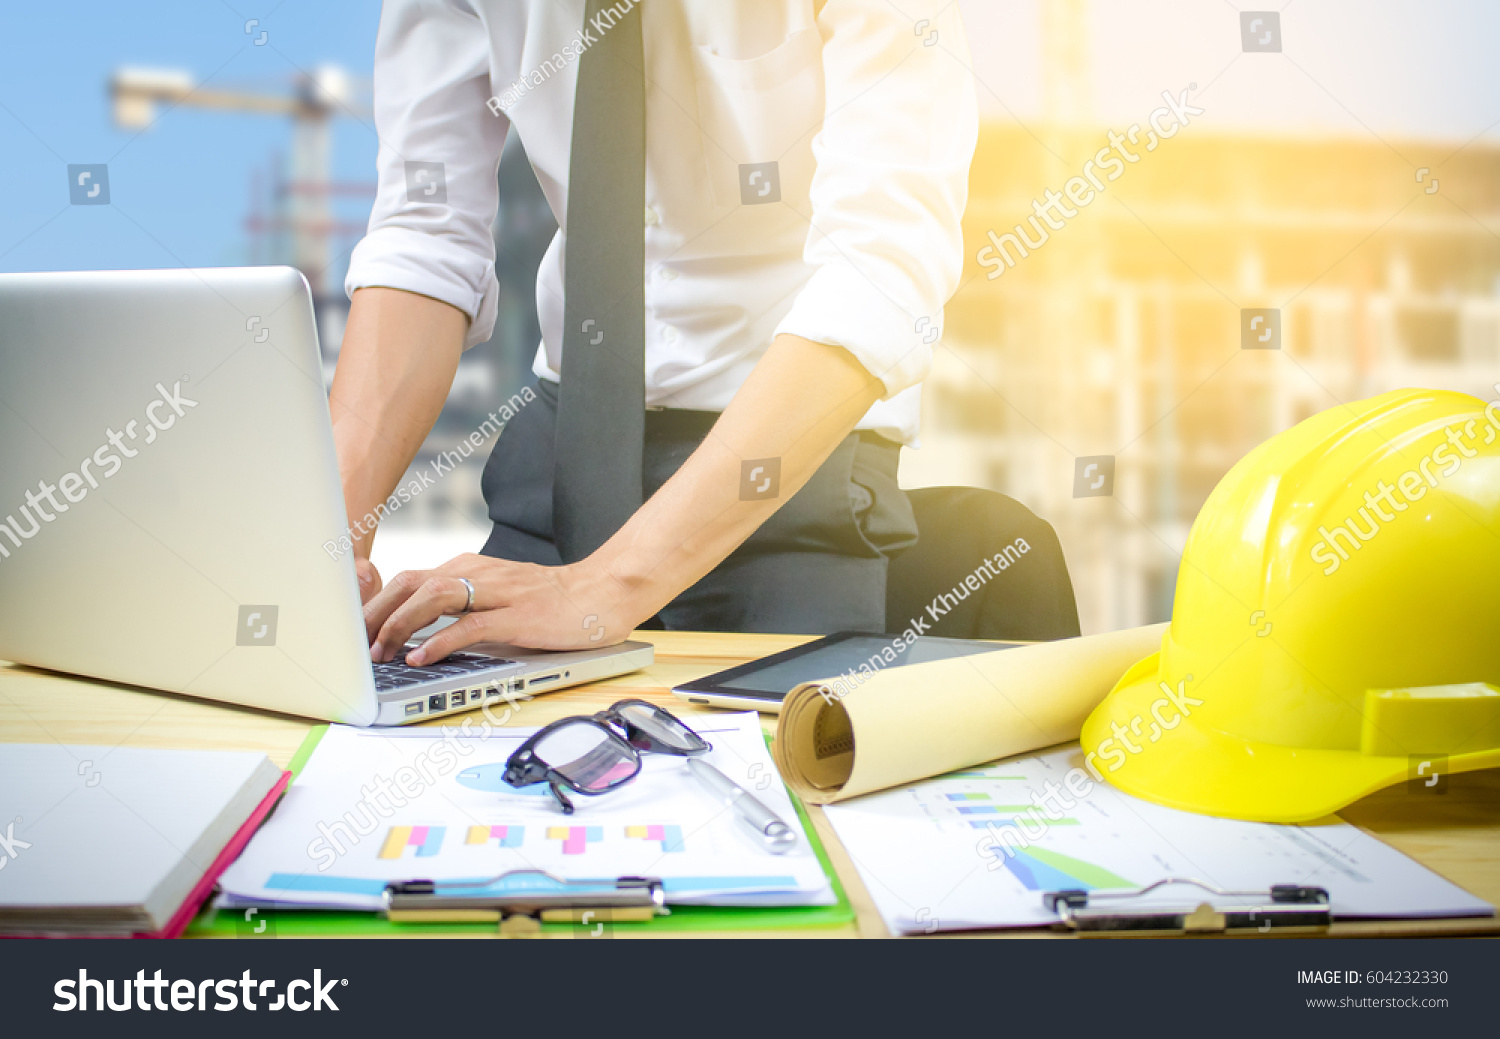 Engineer hold security helmet blueprint paper stock photo royalty engineer hold security helmet and blueprint paper construction drawing plan near laptop computerarchitect working malvernweather Choice Image